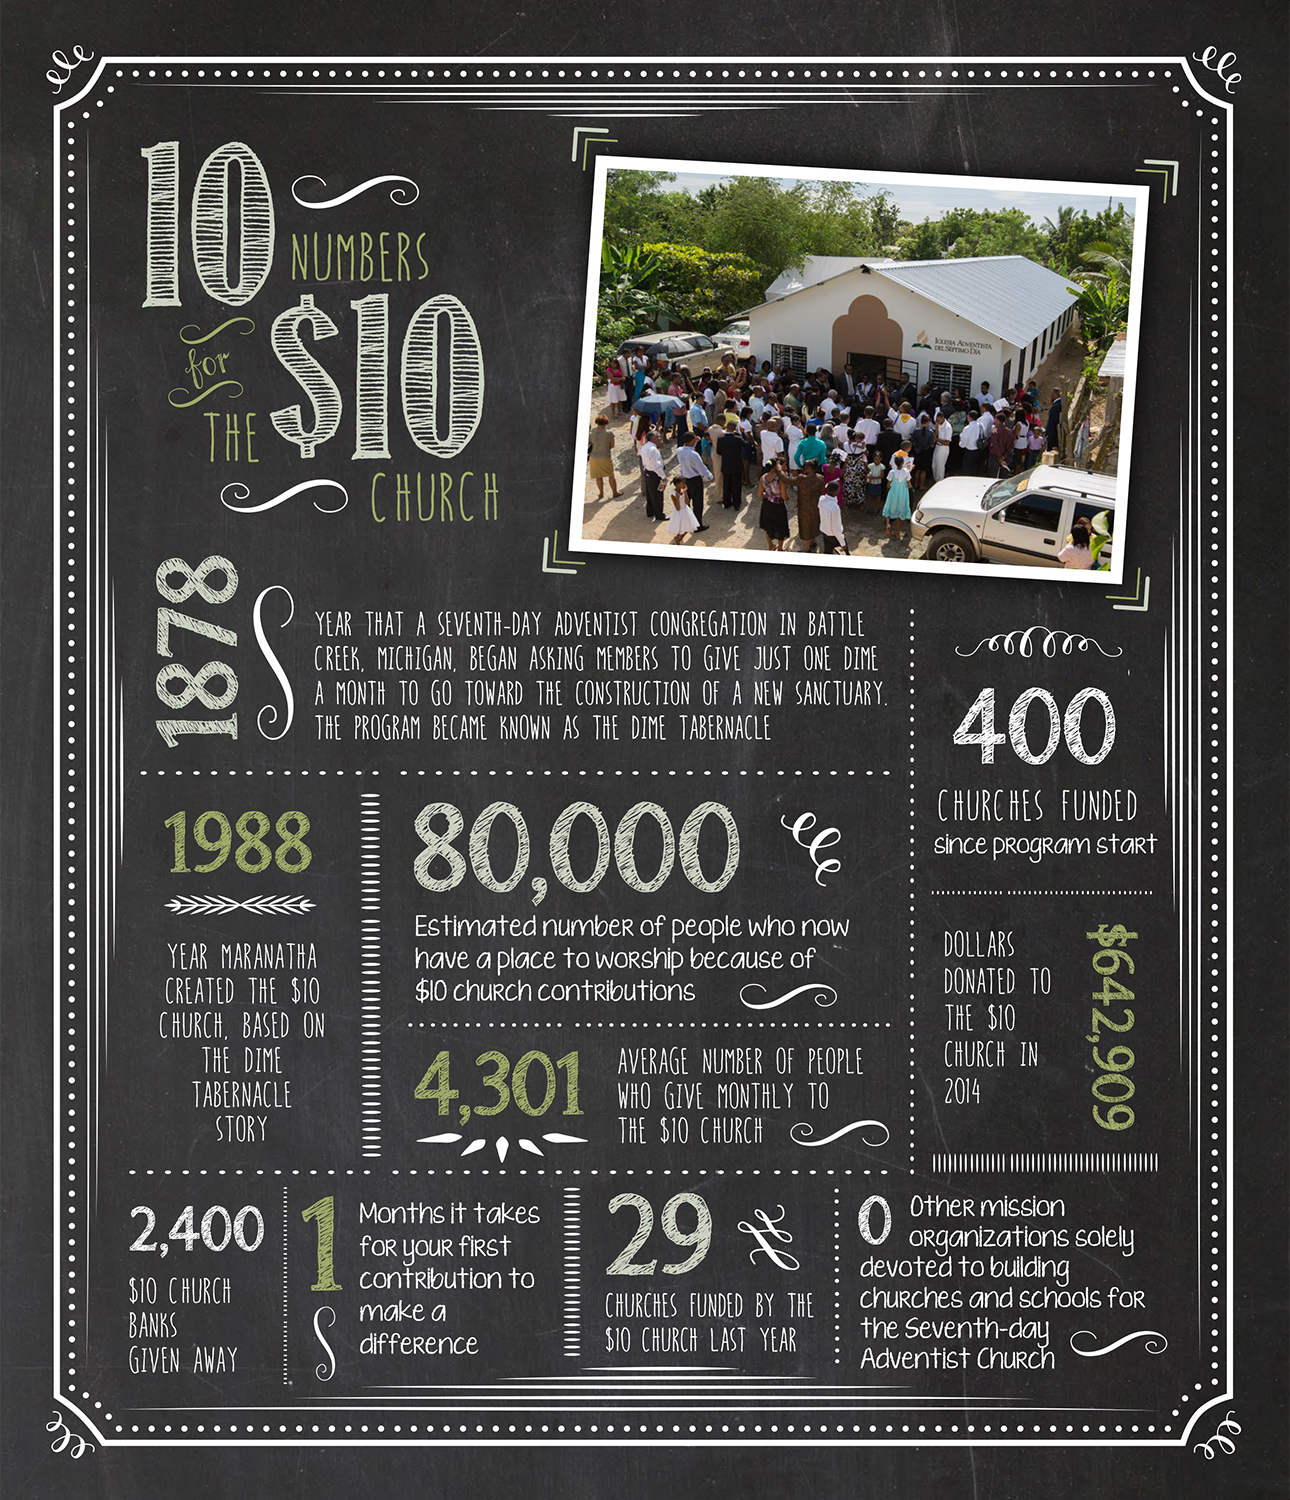 What does it take to build a church in the Dominican Republic